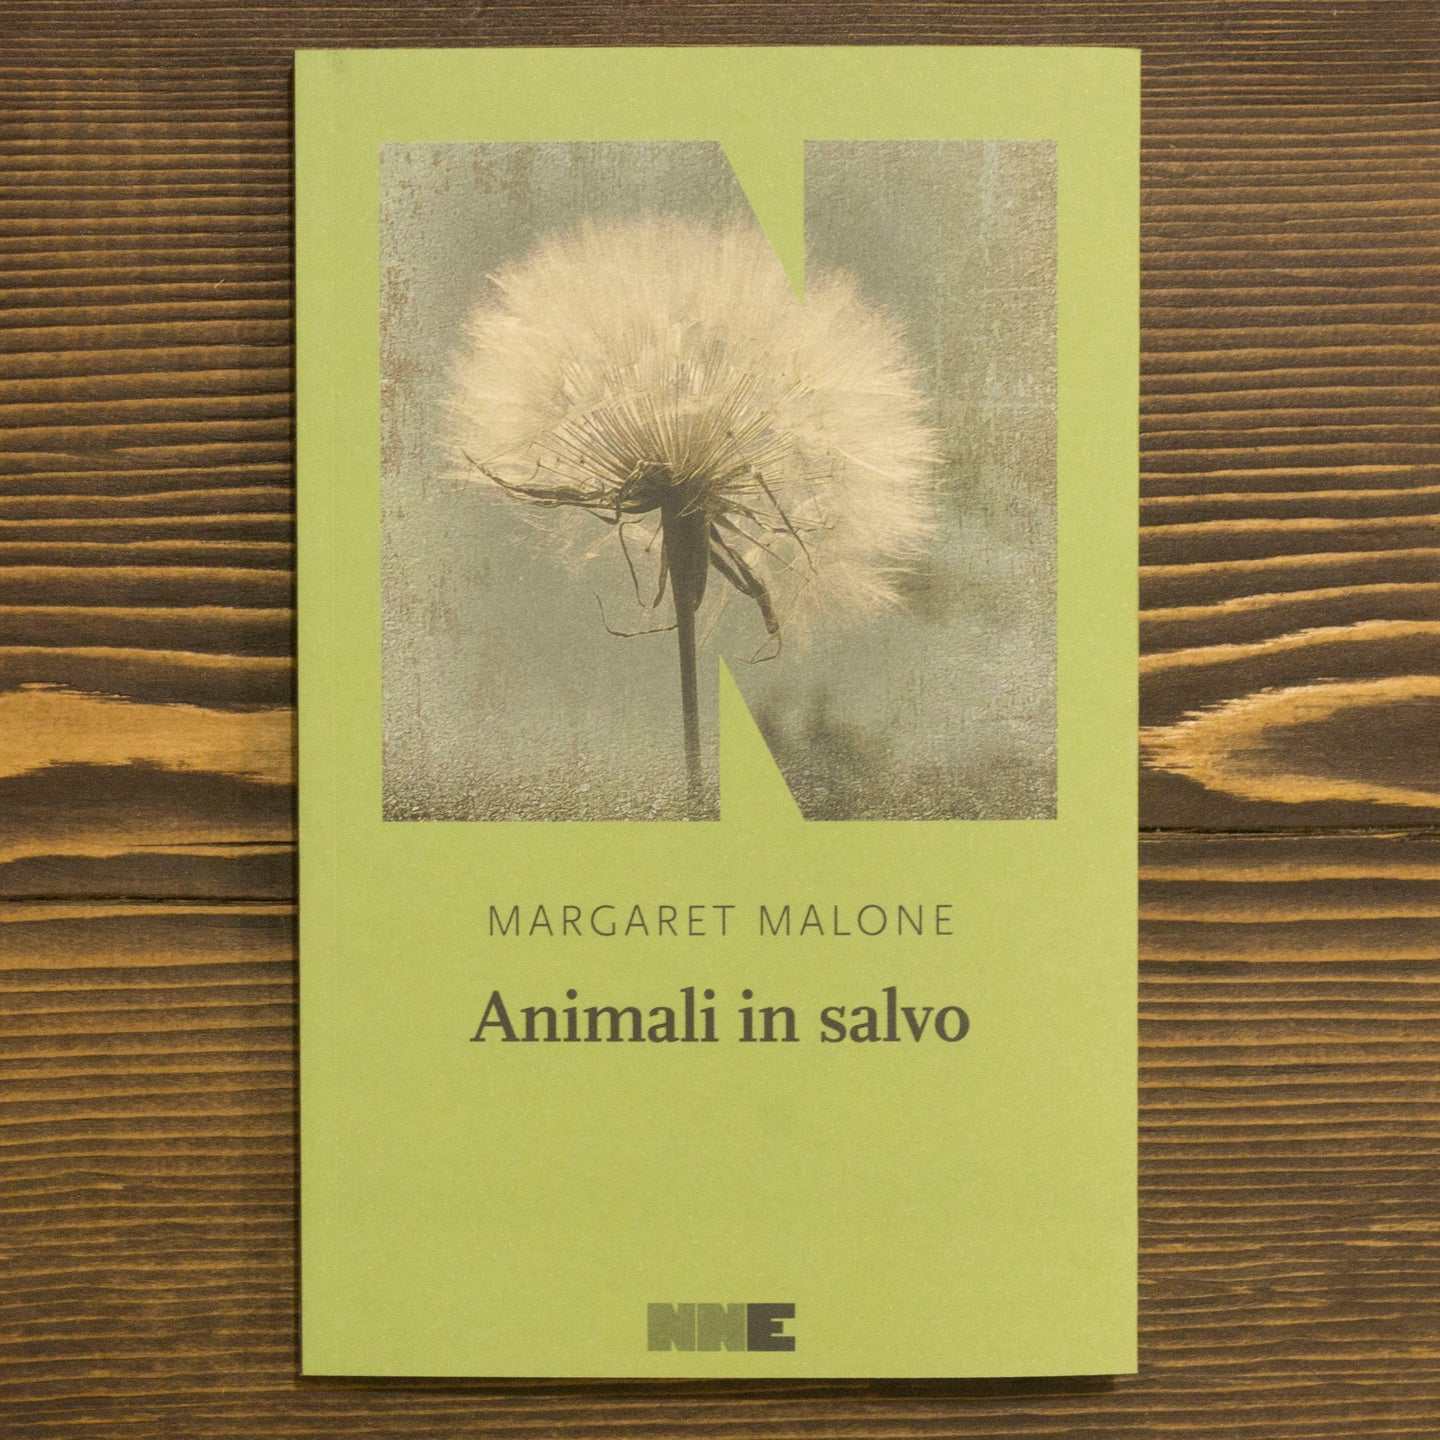 ANIMALI IN SALVO - MARGARET MALONE